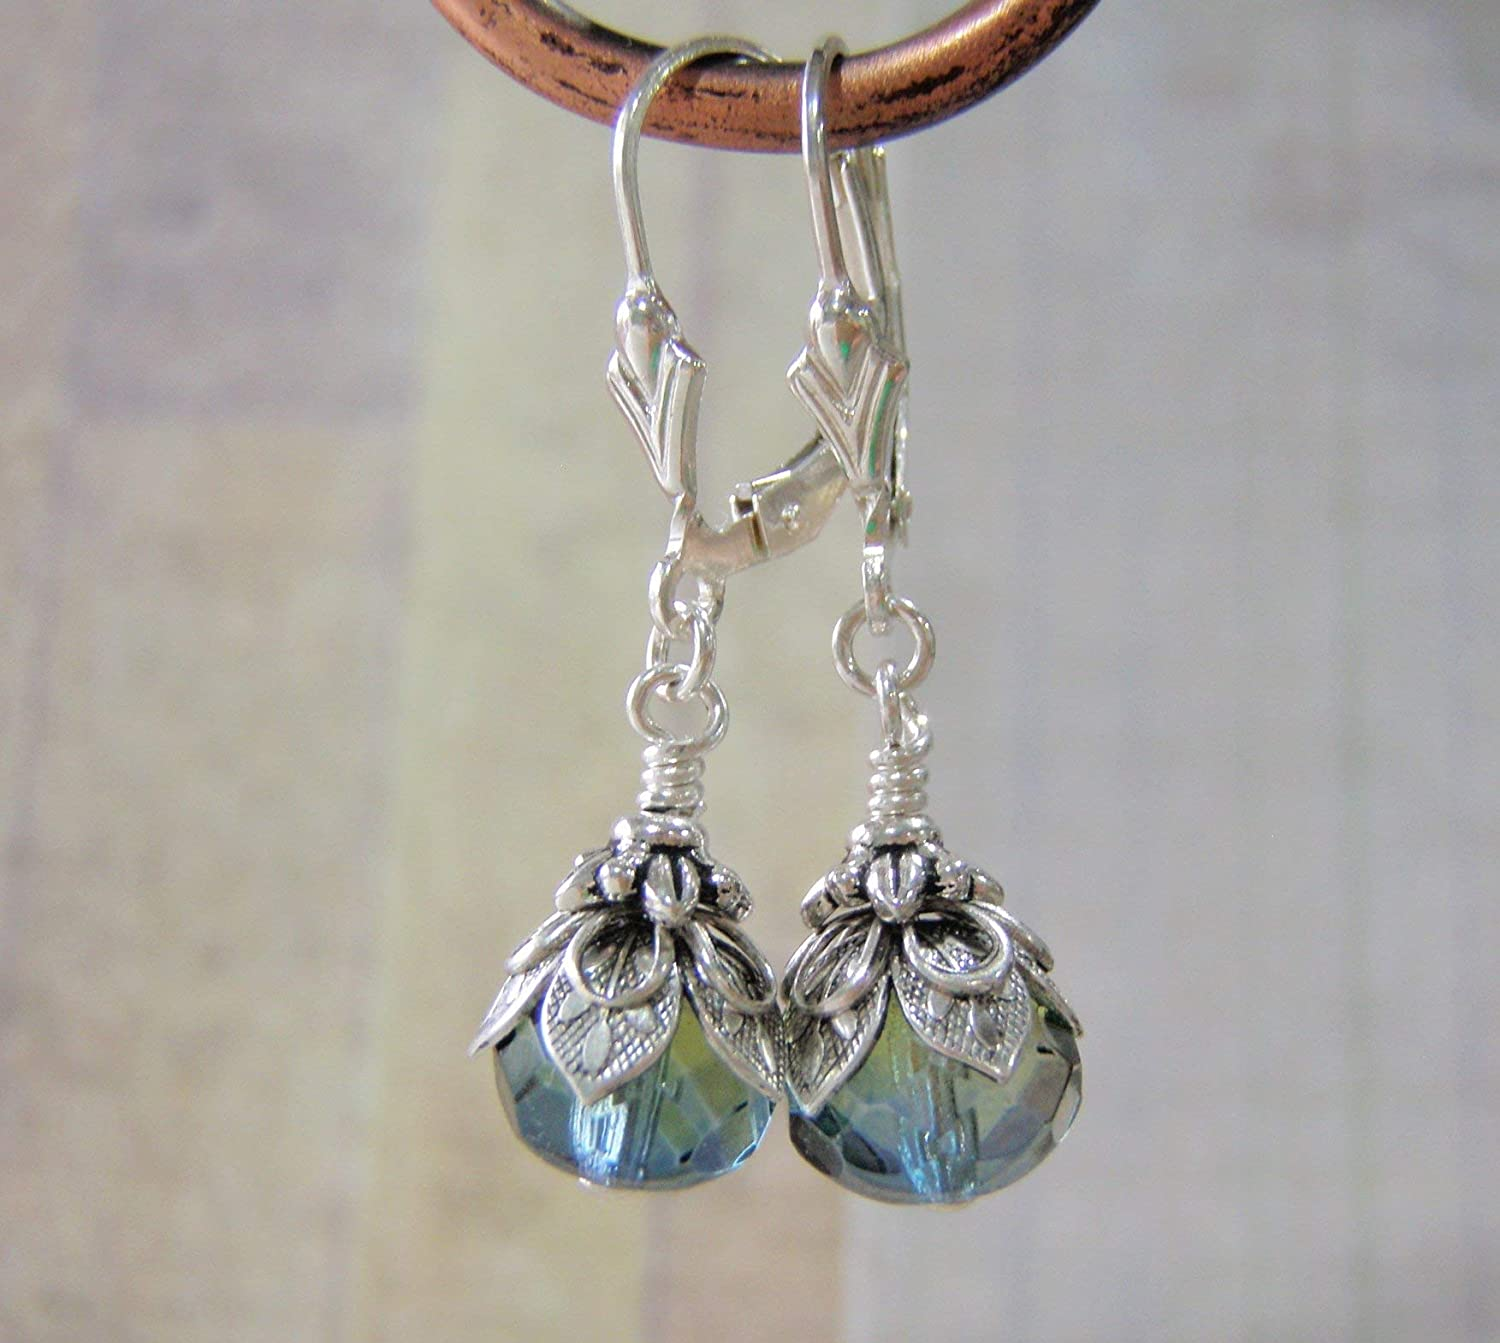 Sea Witch Earrings Sterling Silver Art Deco Lever Back Ear Wire 9x6mm Blue and Green Glass Dangle Handmade